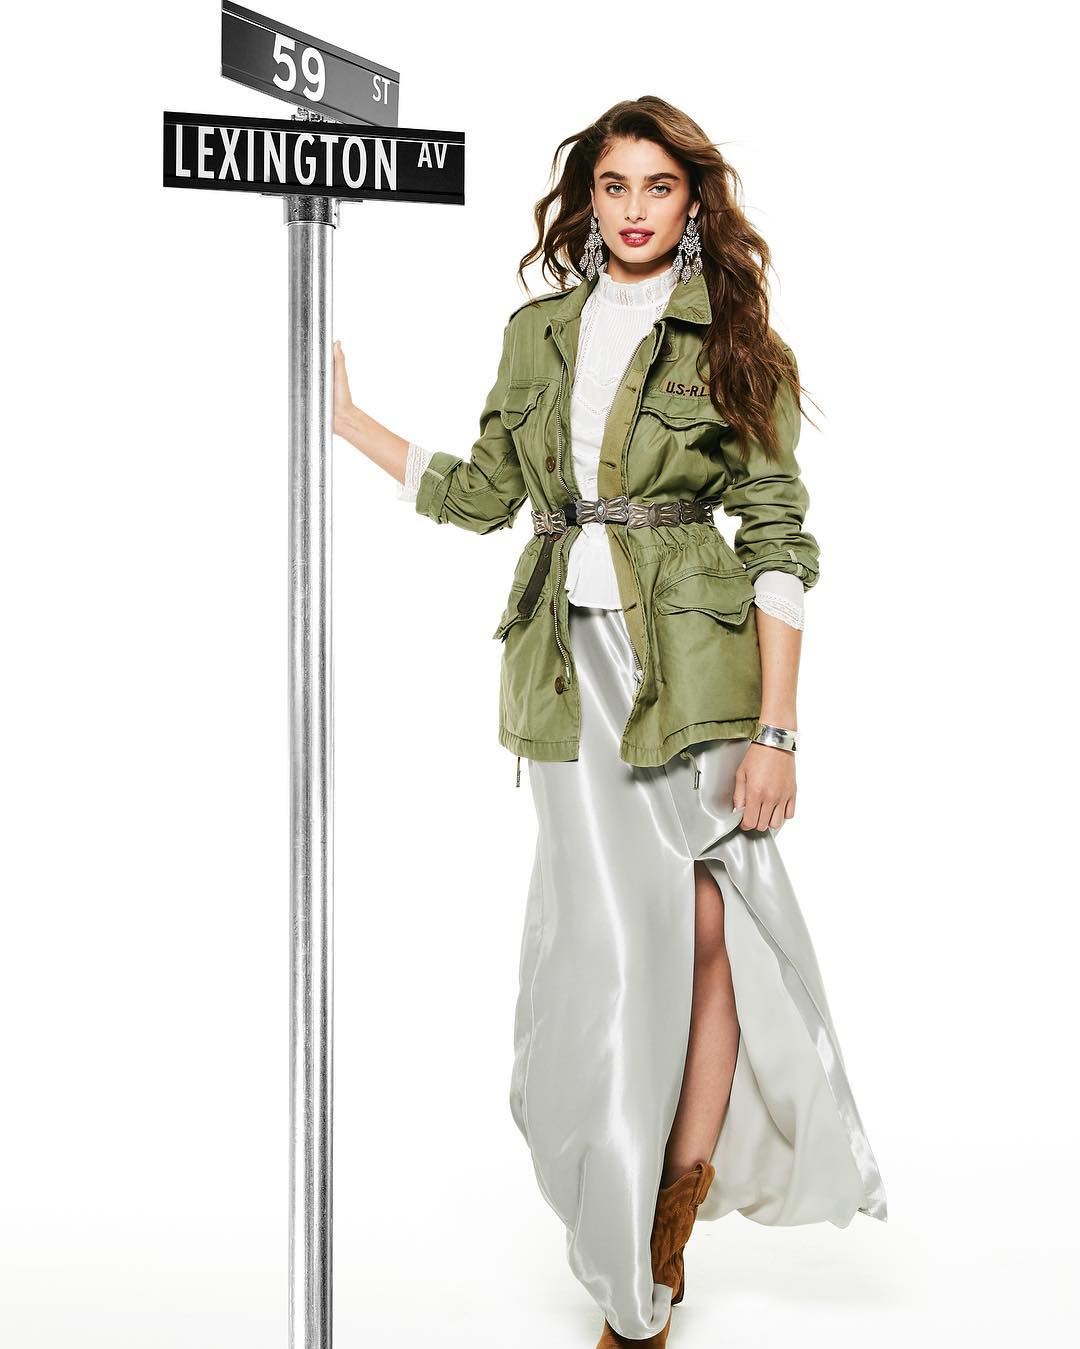 Taylor Hill Wearing Khaki Army Jacket For Bloomingdales Campaign 2020